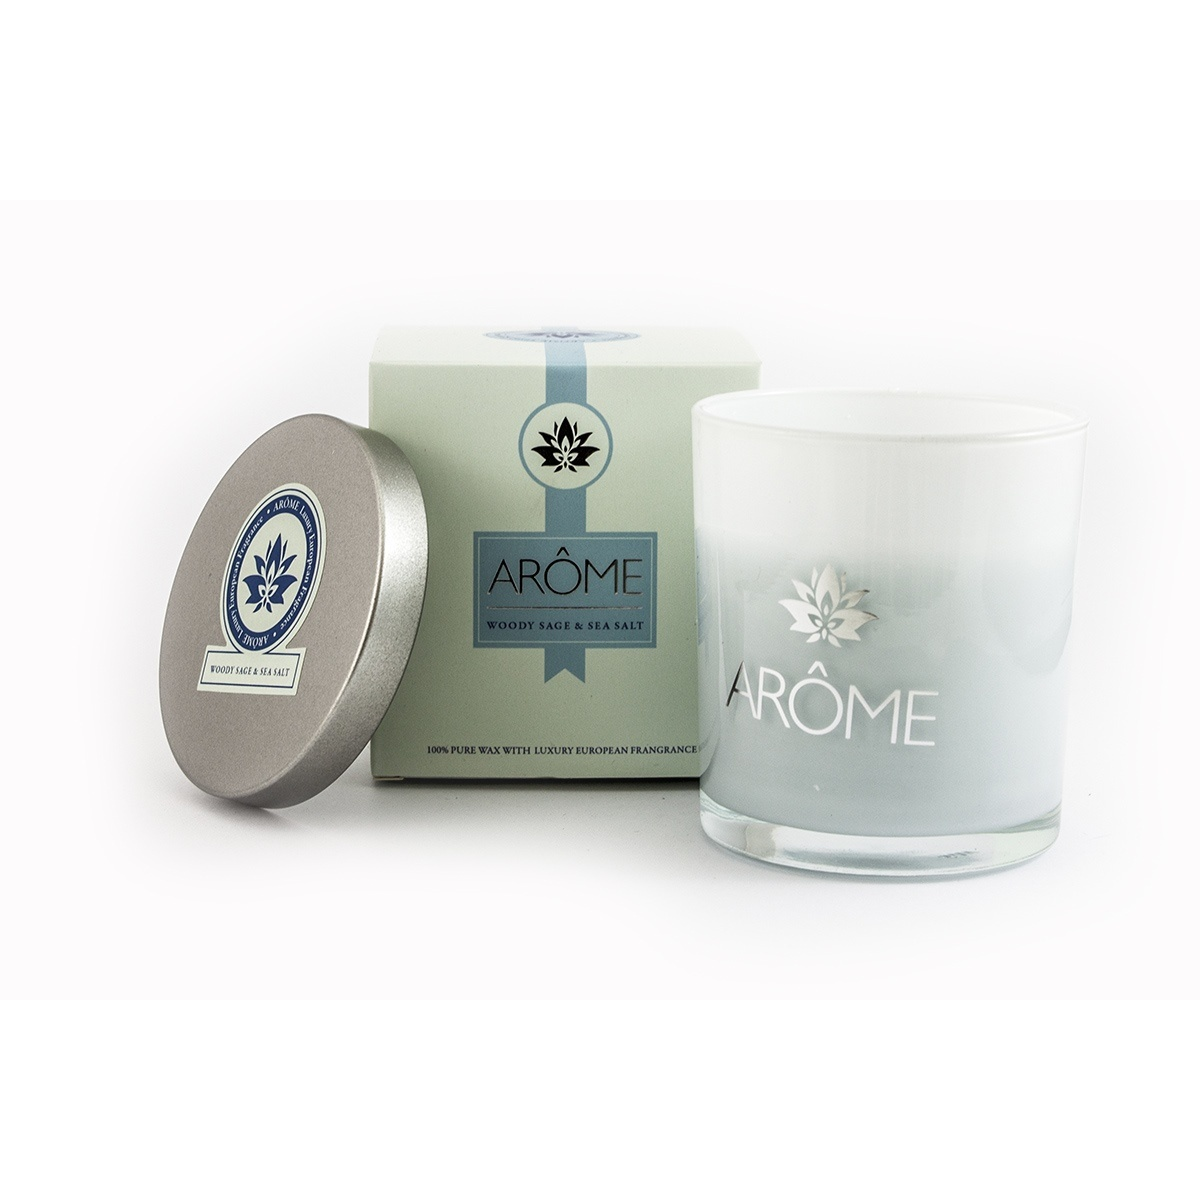 Arome Vonná svíčka s víčkem Woody sage and Sea salt, 200 g